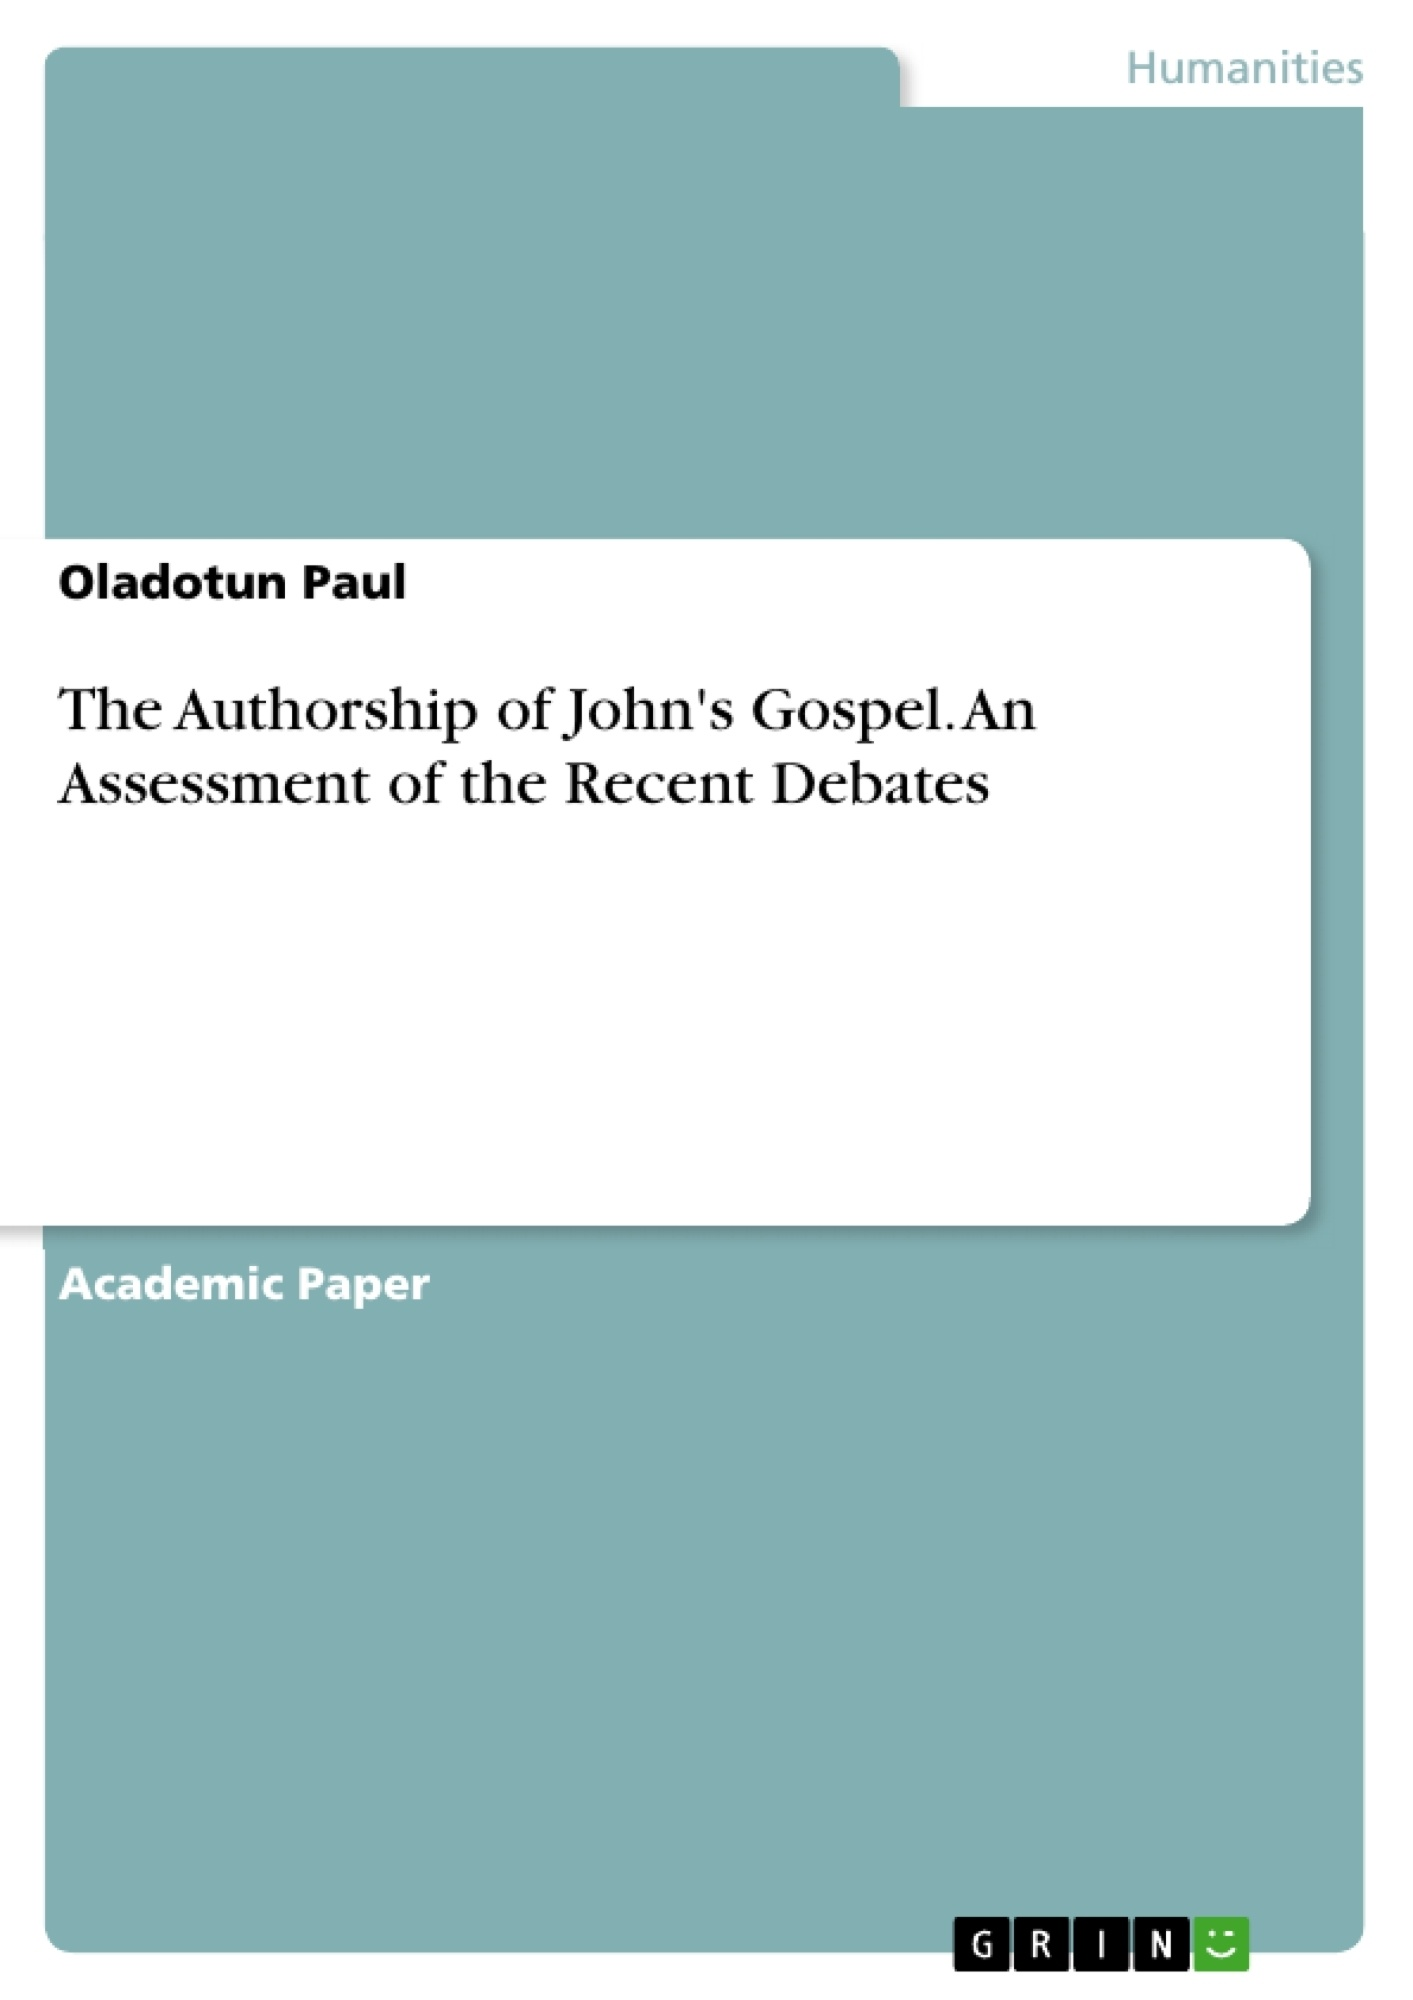 Title: The Authorship of John's Gospel. An Assessment of the Recent Debates